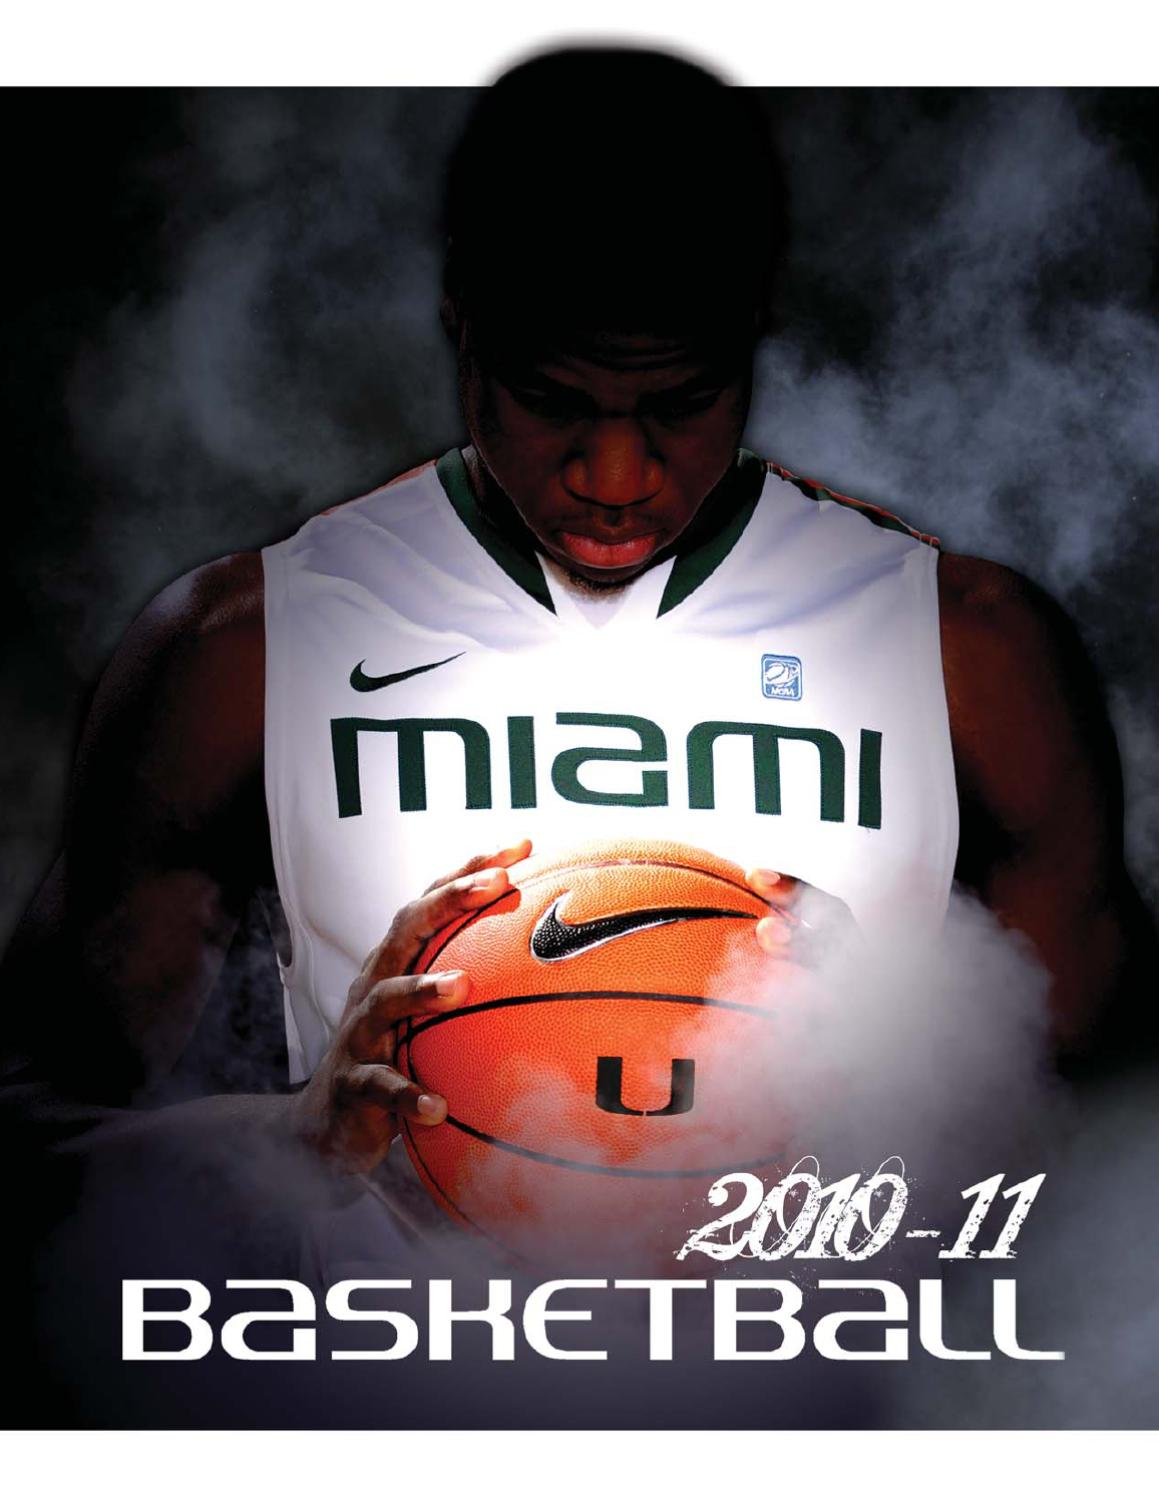 newest b72a0 61f7a 2010-11 University of Miami Mens Basketball Media Guide by Miami  Hurricanes - issuu